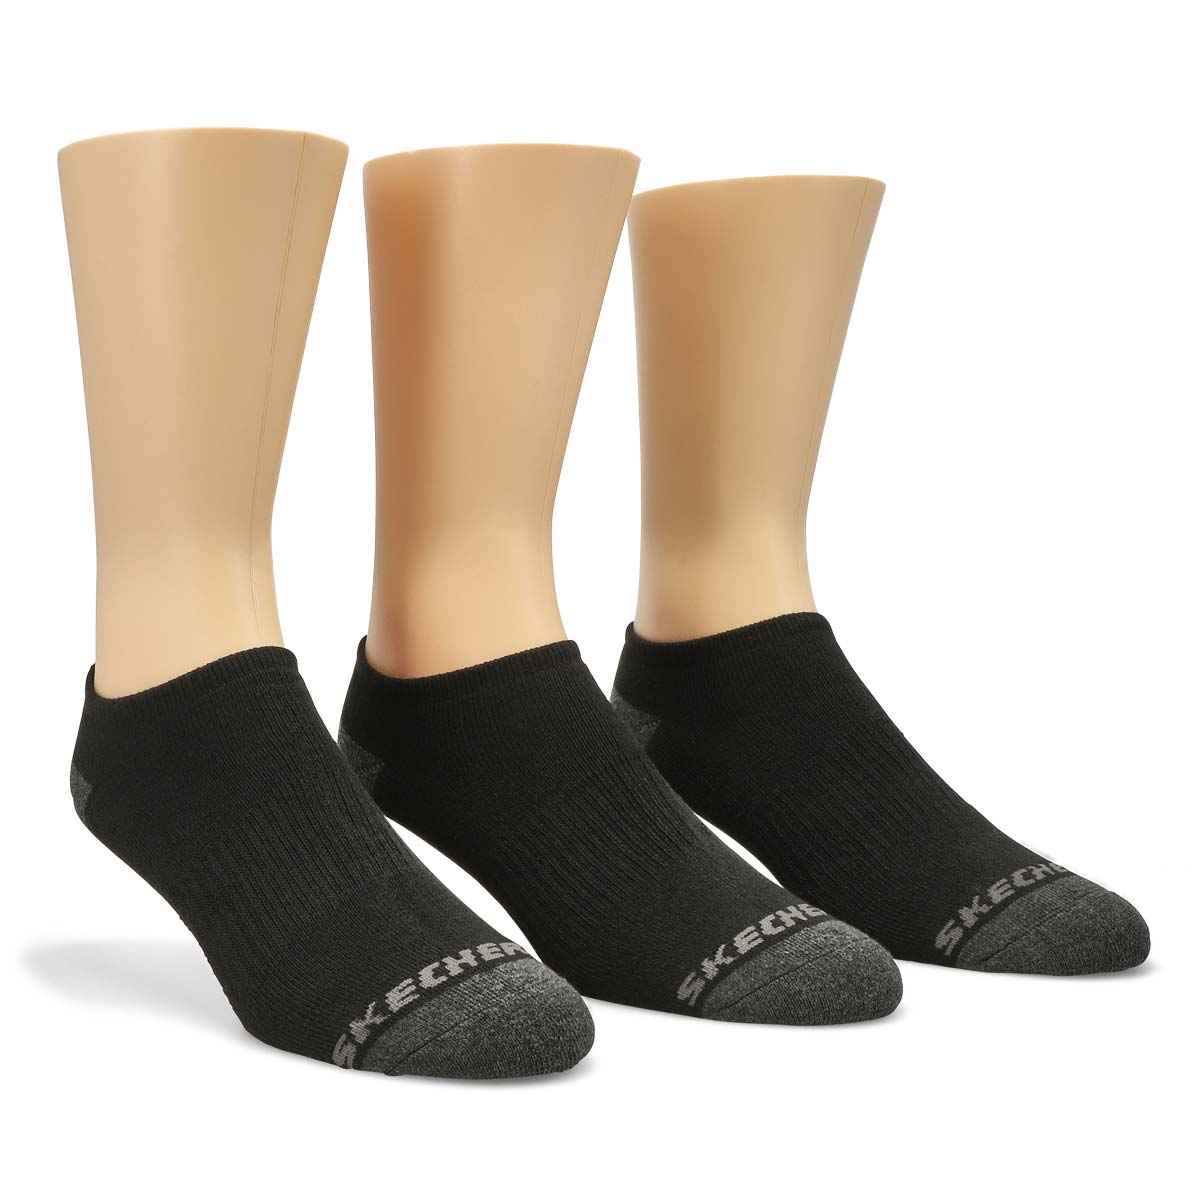 Boys' No Show Full Terry Sock - 6 pack